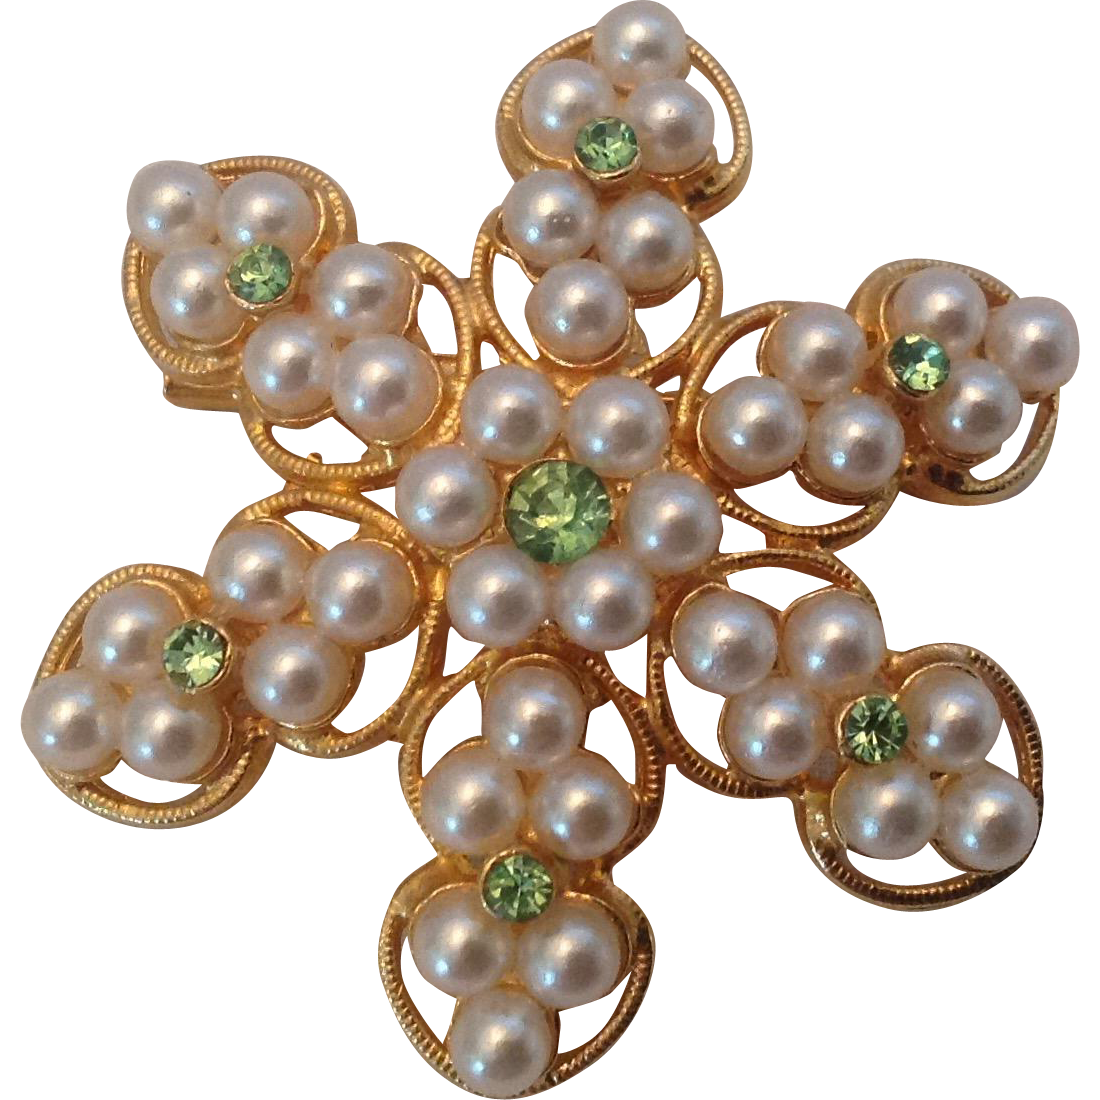 Snowflake Pin with Simulated Pearls and Sparkling Green Rhinestones